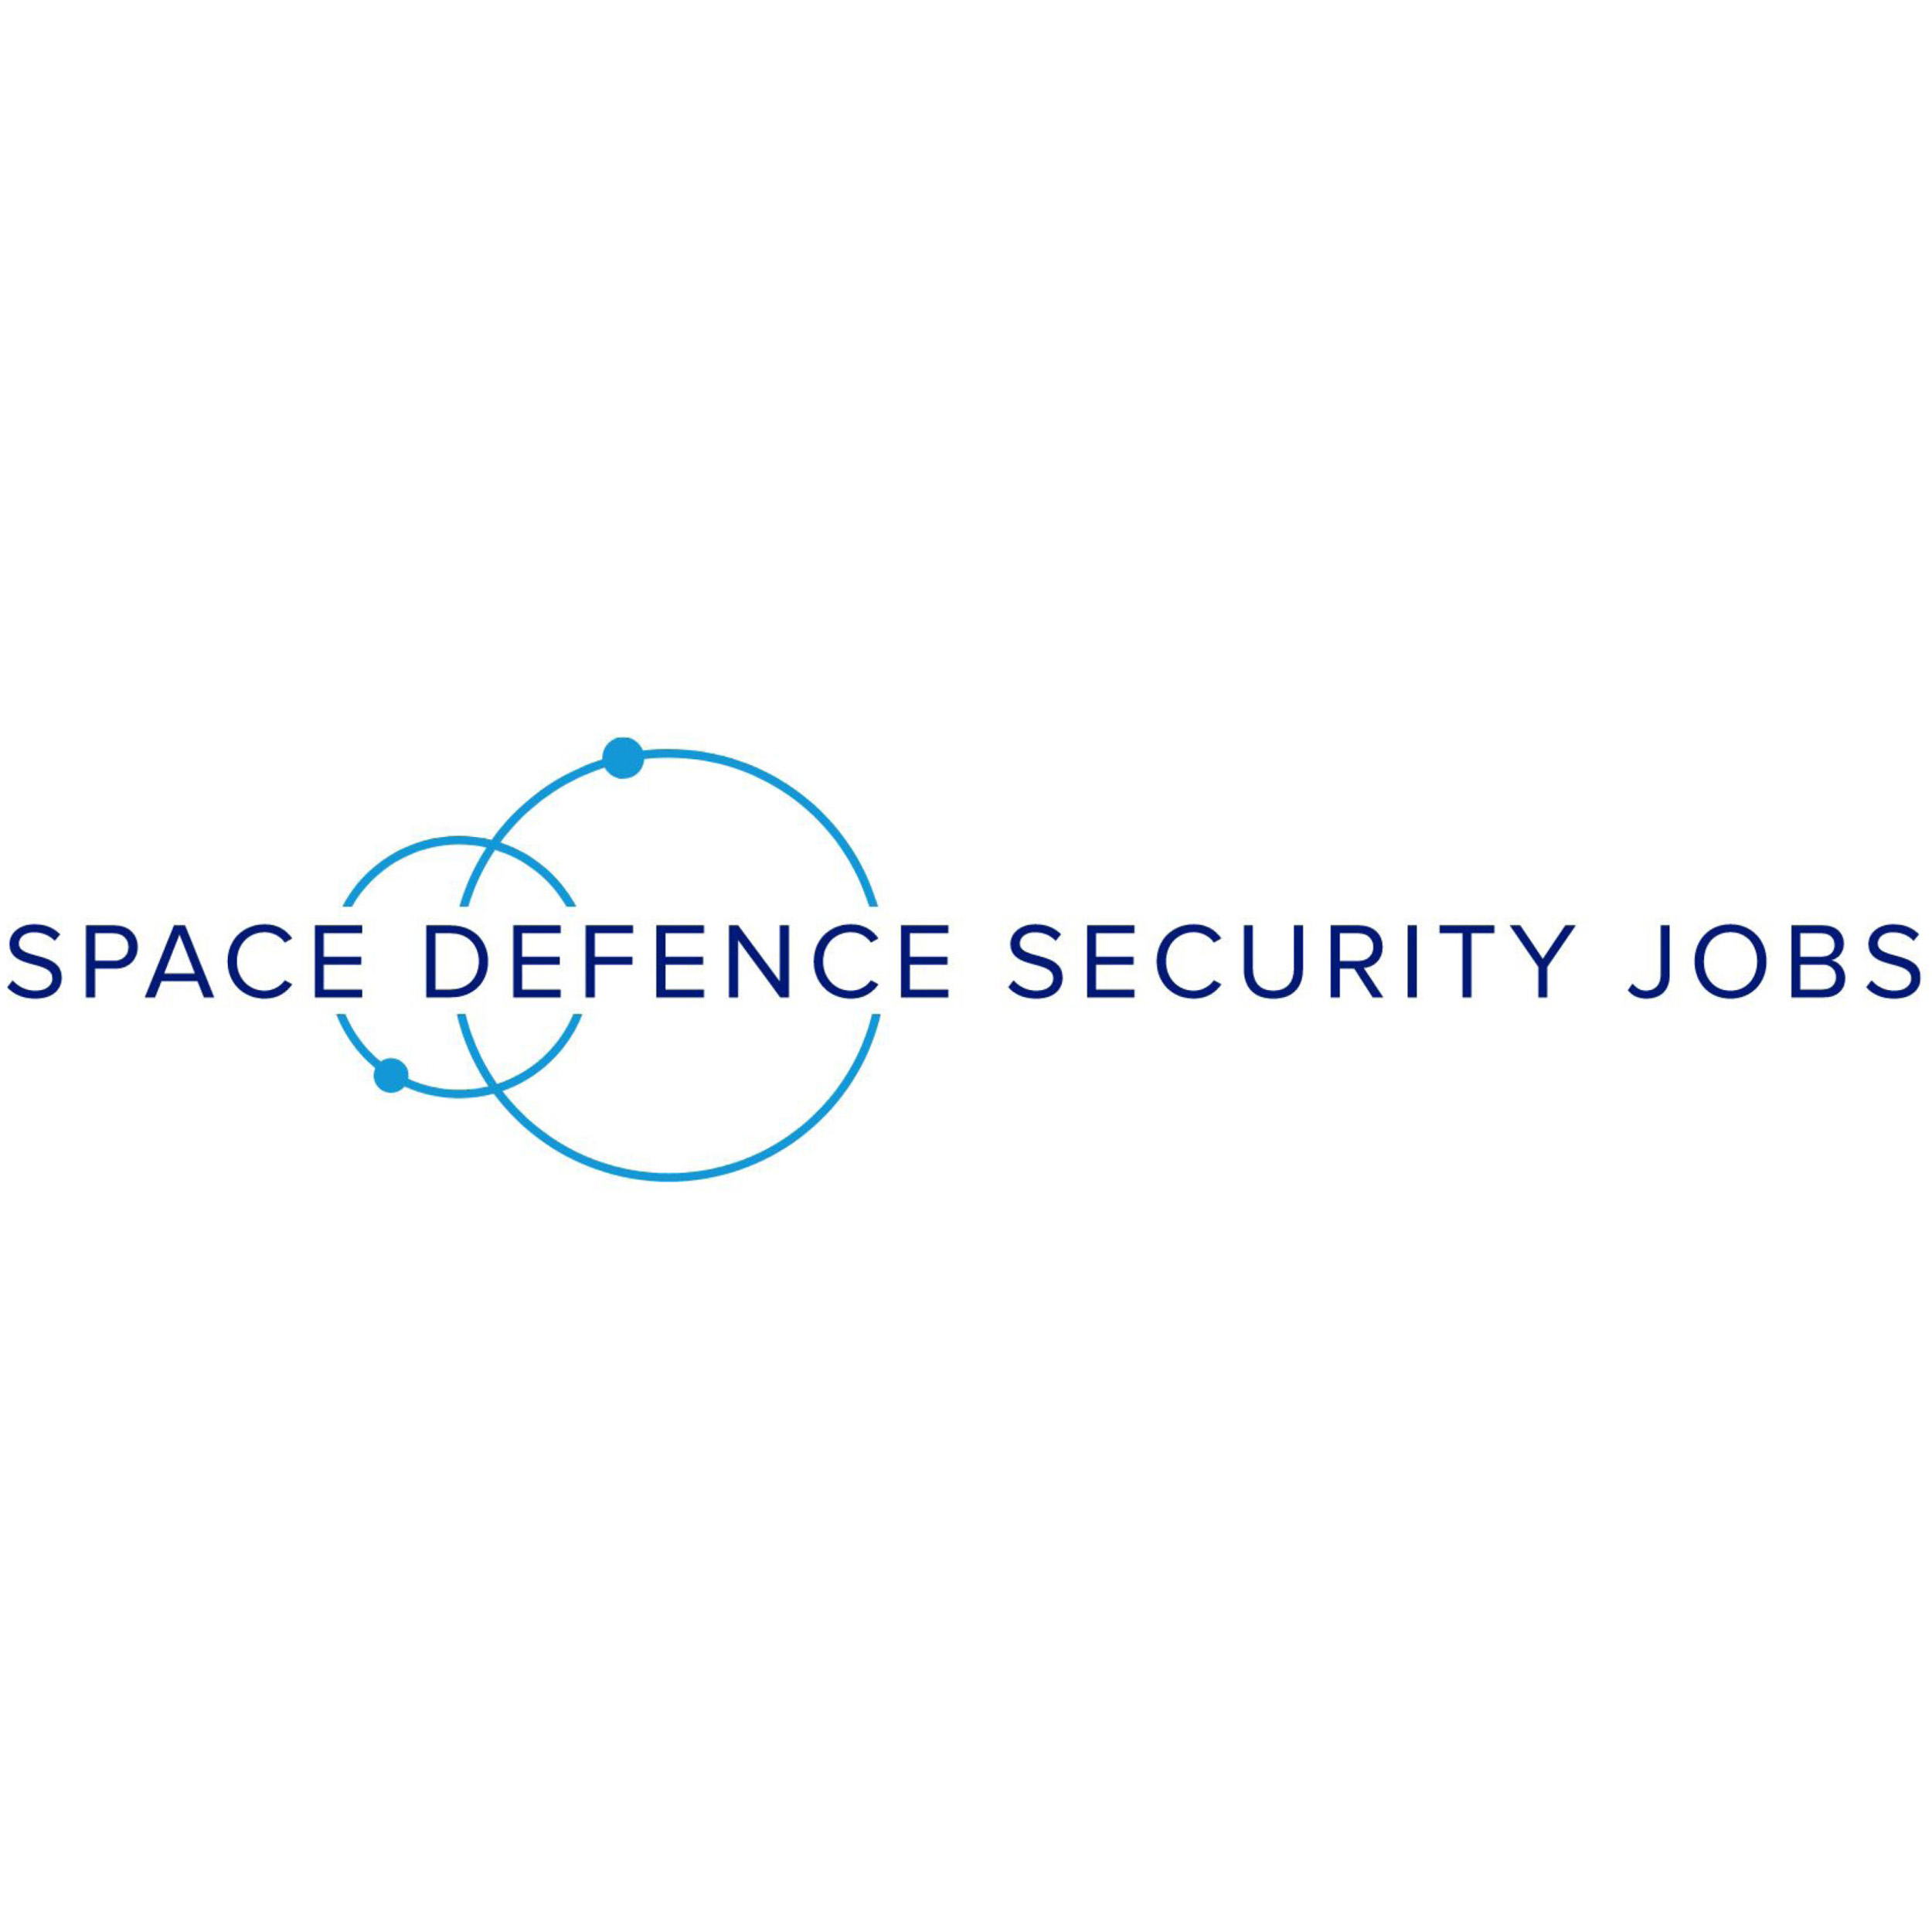 Space Defence Security Jobs